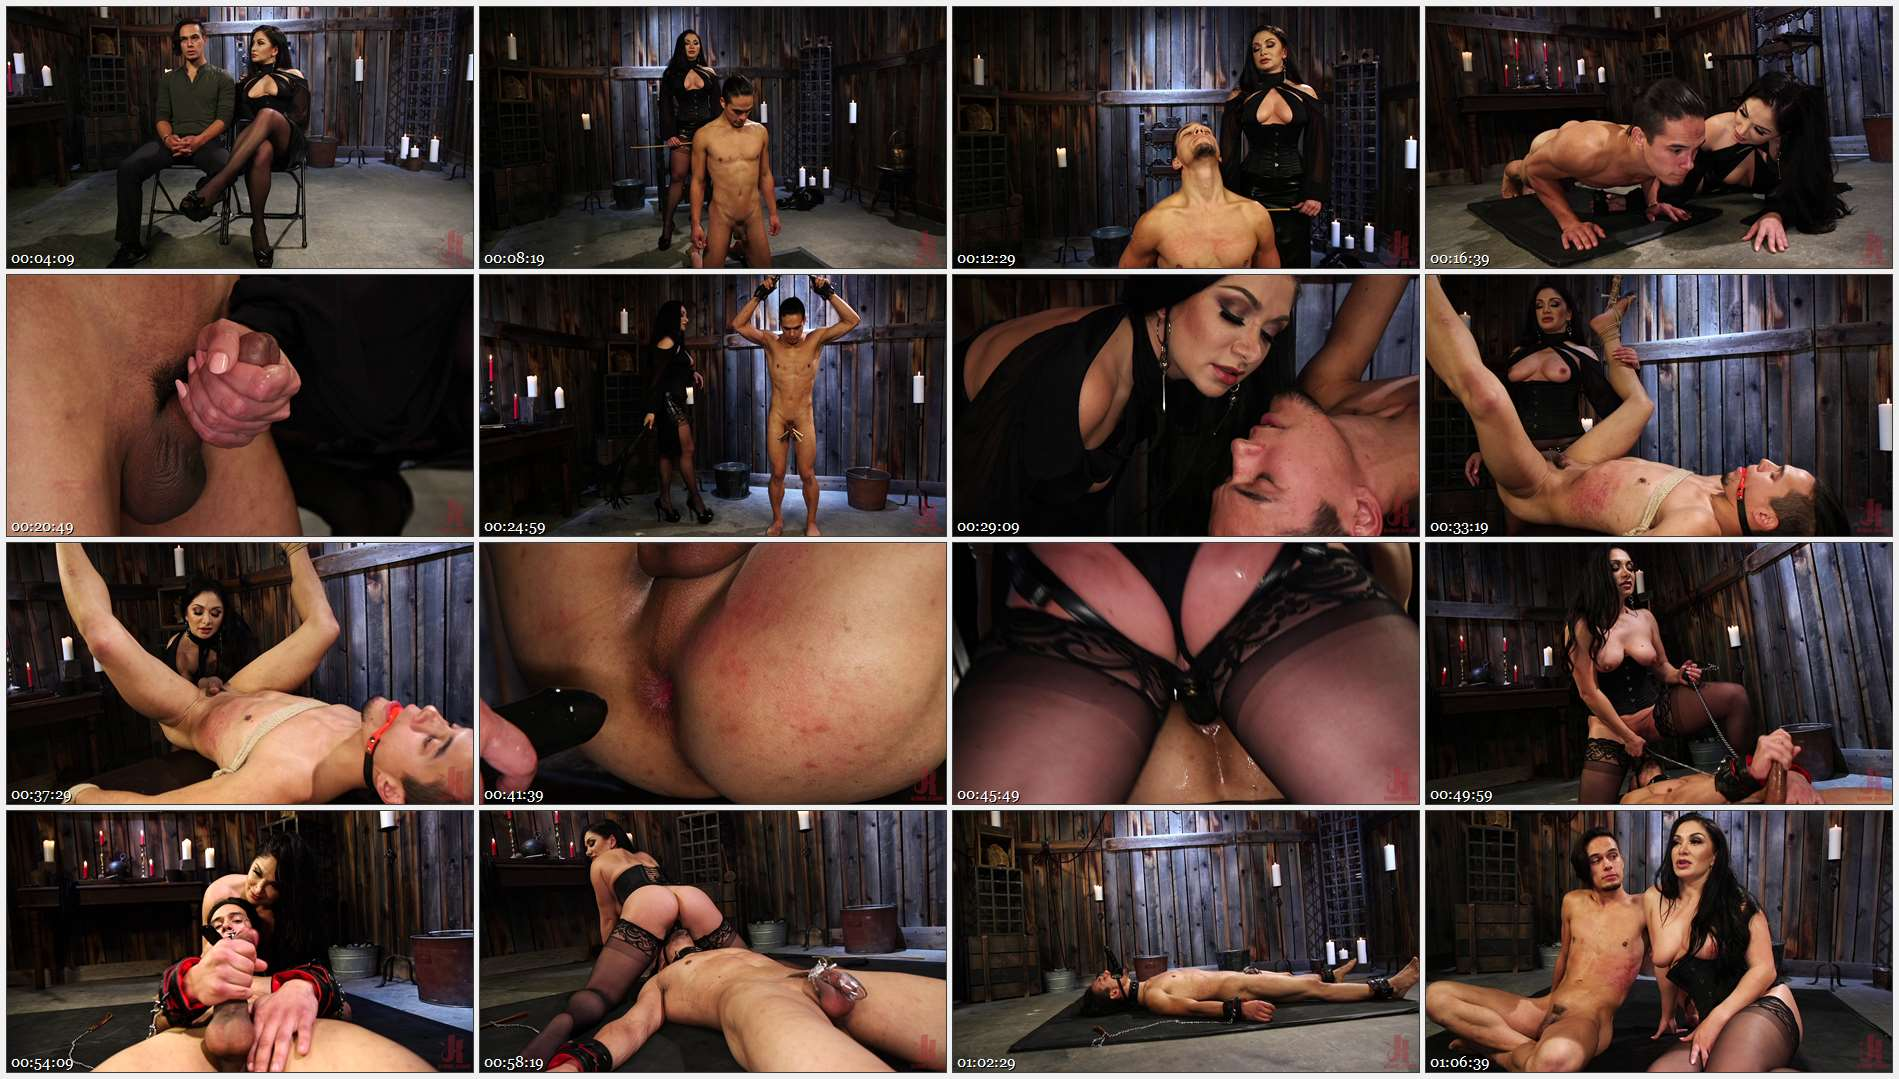 Lea Lexis – Adrian Marx – Fresh Meat: Lea Lexis takes new sub for a test drive! 